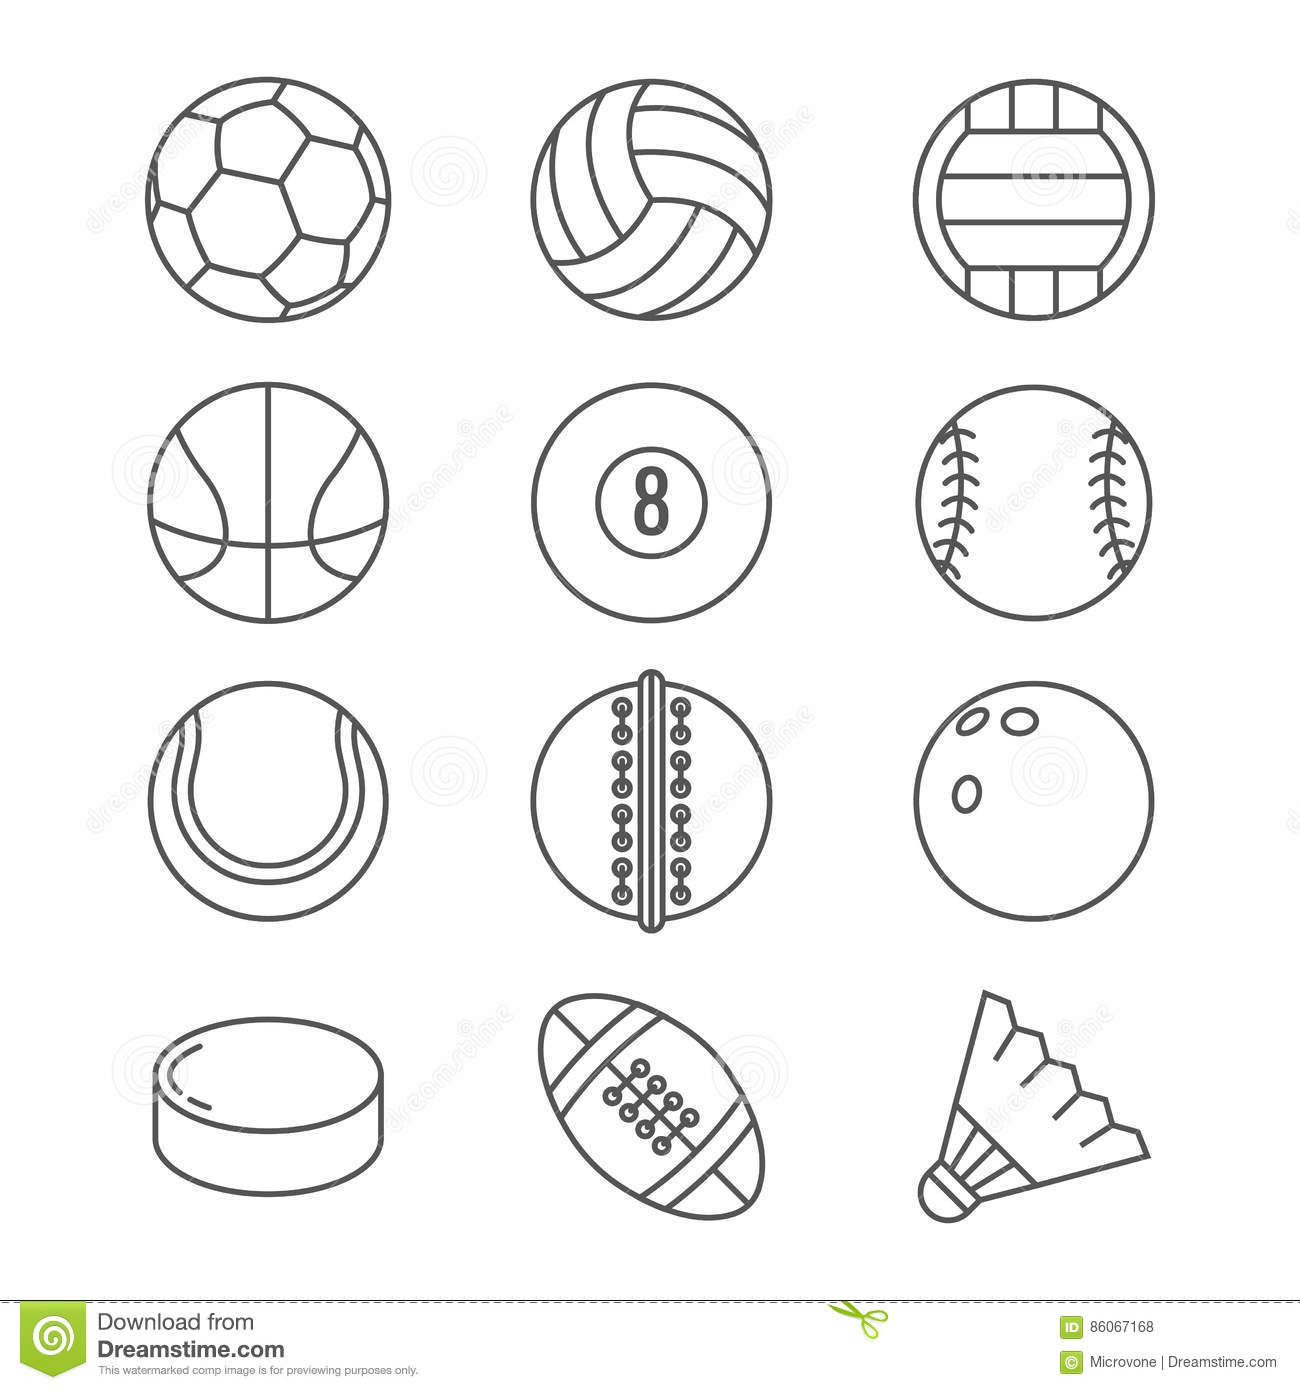 Thin Line Volleyball Ball Sketch Sketch Coloring Page